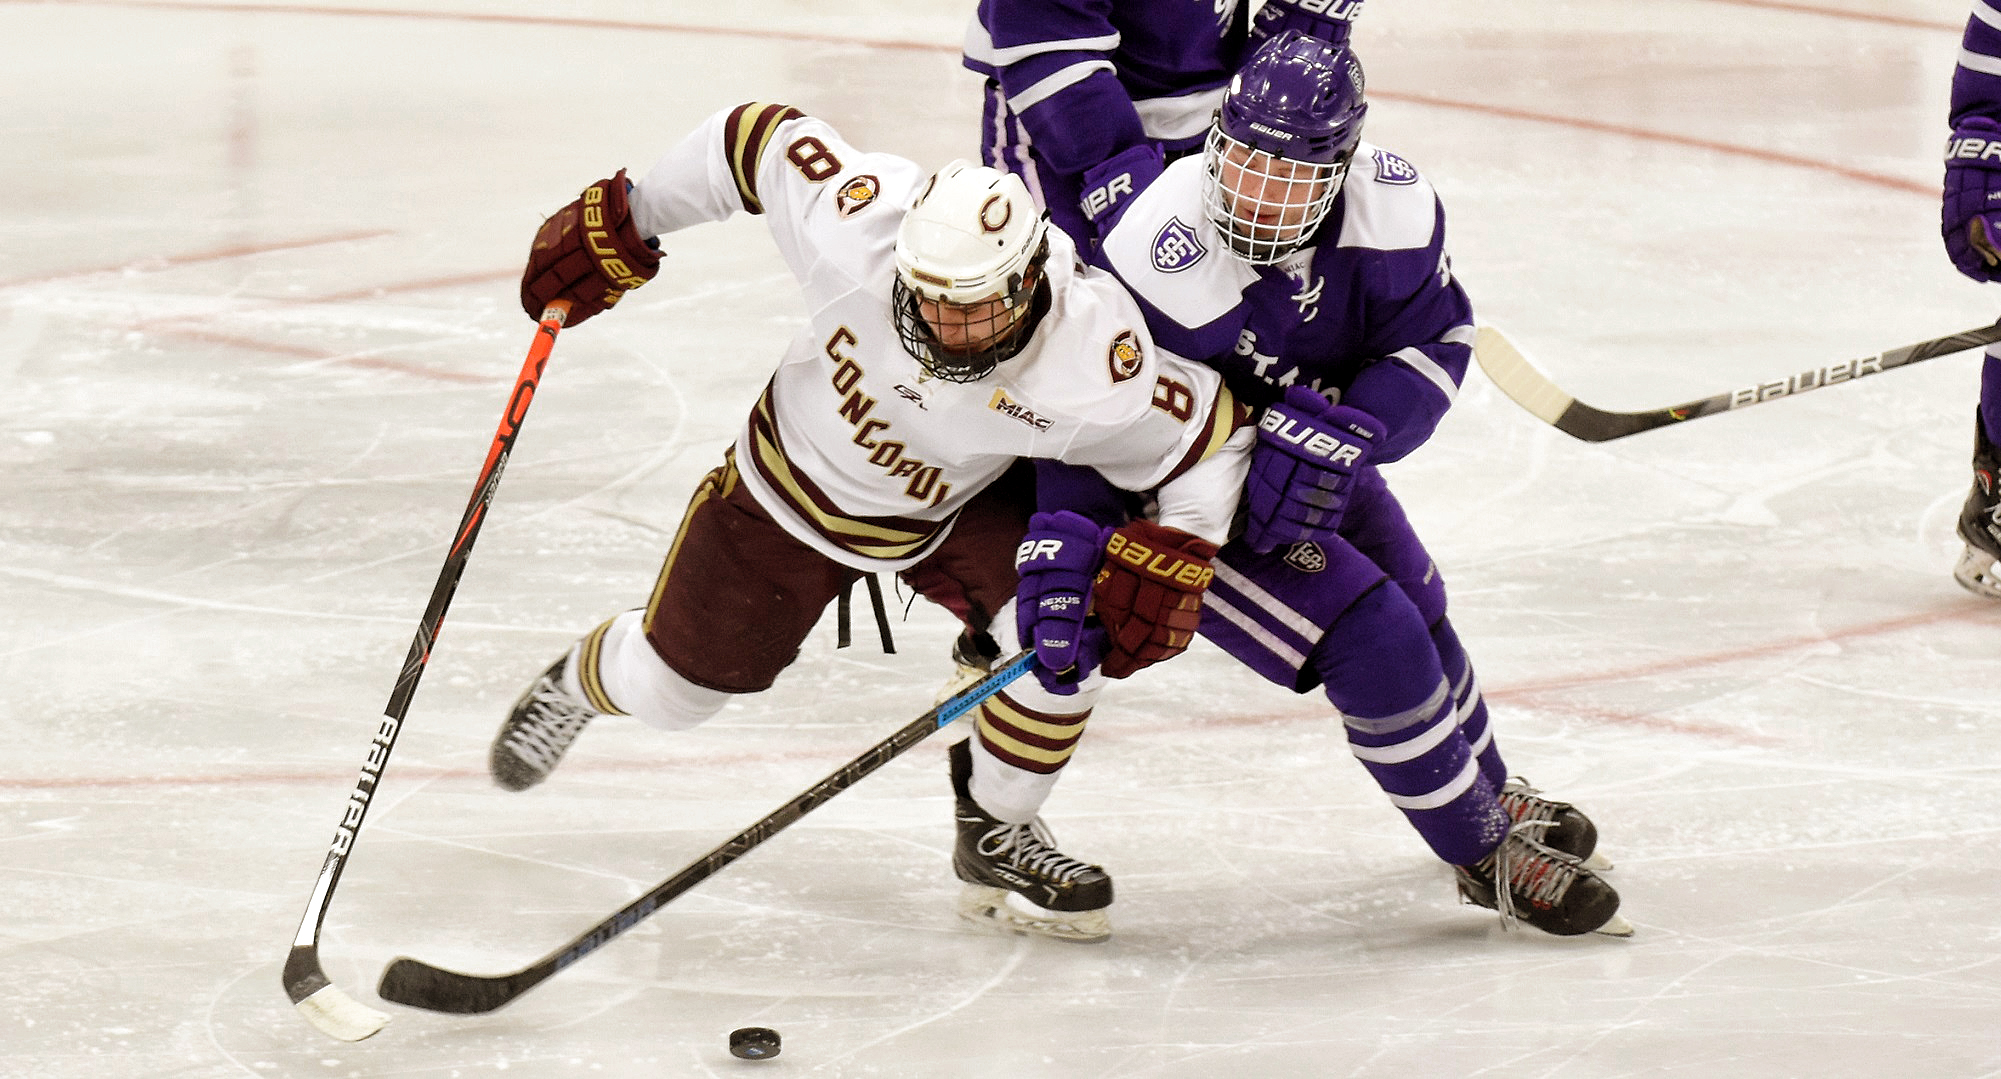 Aaron Herdt gets tied up with a St. Thomas defensive player in the second period of the Cobbers' series finale with UST. Herdt had one of Concordia's two goals on the day.